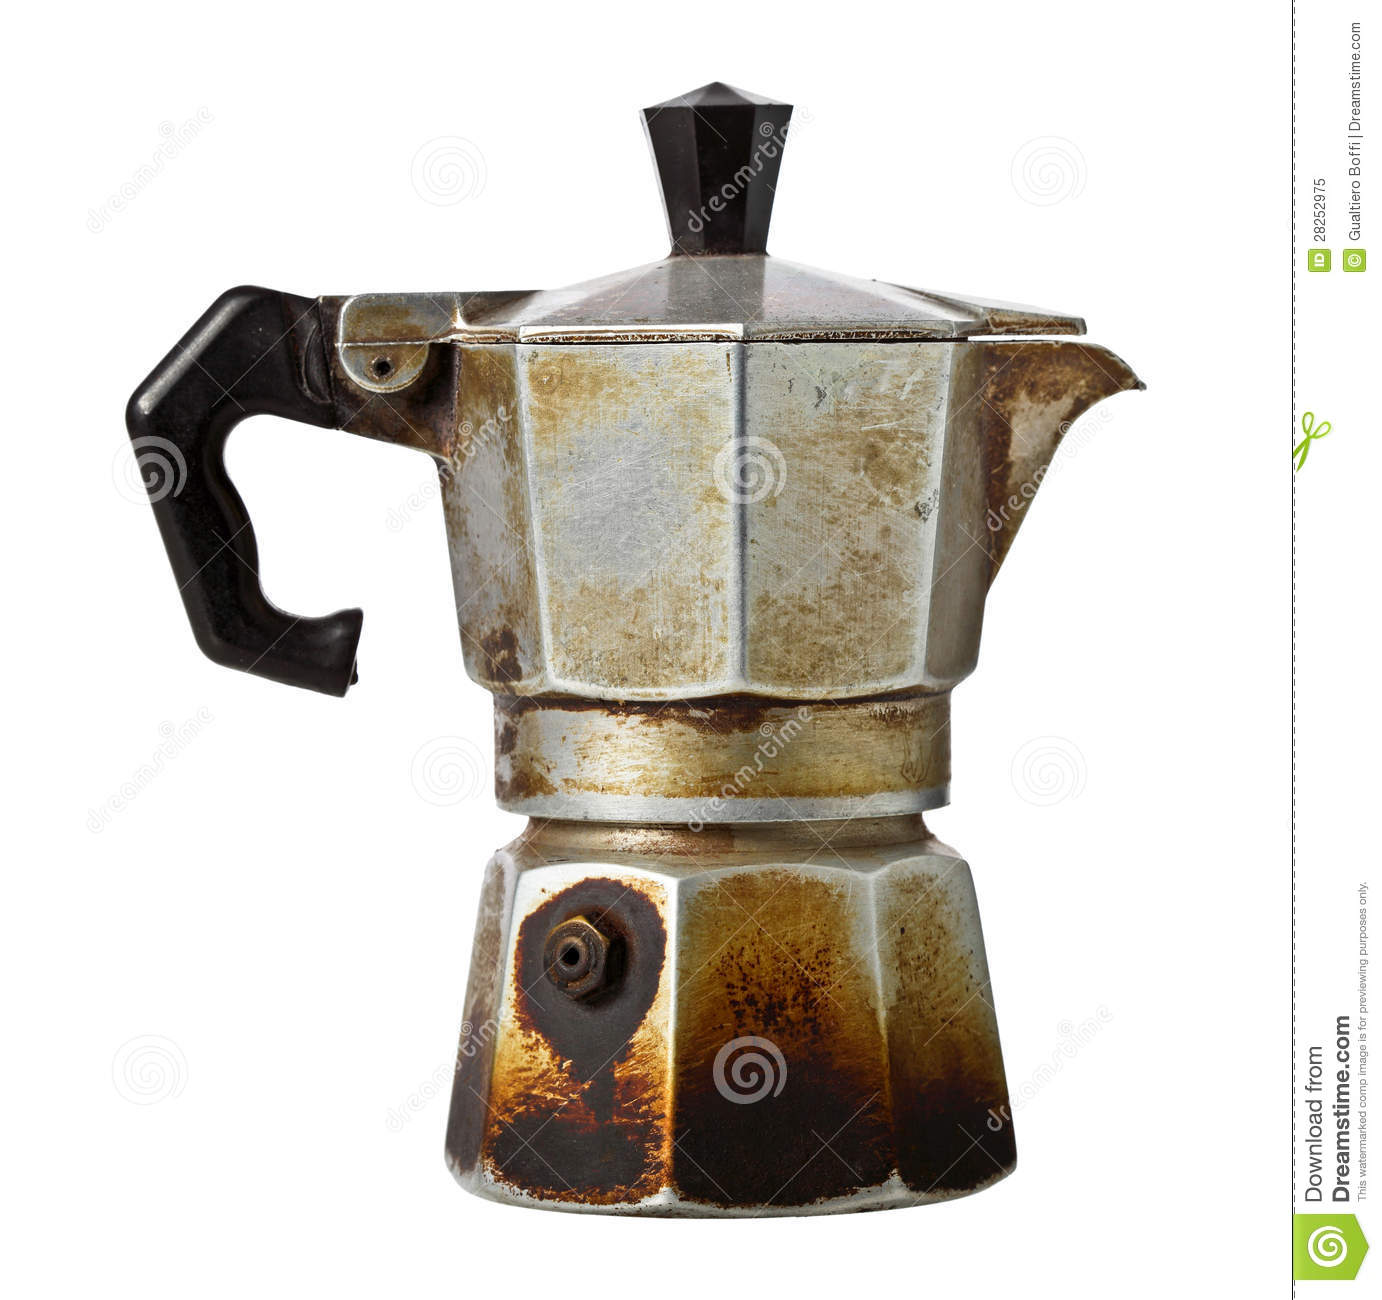 Old Mr Coffee Maker : Coffee Maker Royalty Free Stock Photo - Image: 28252975